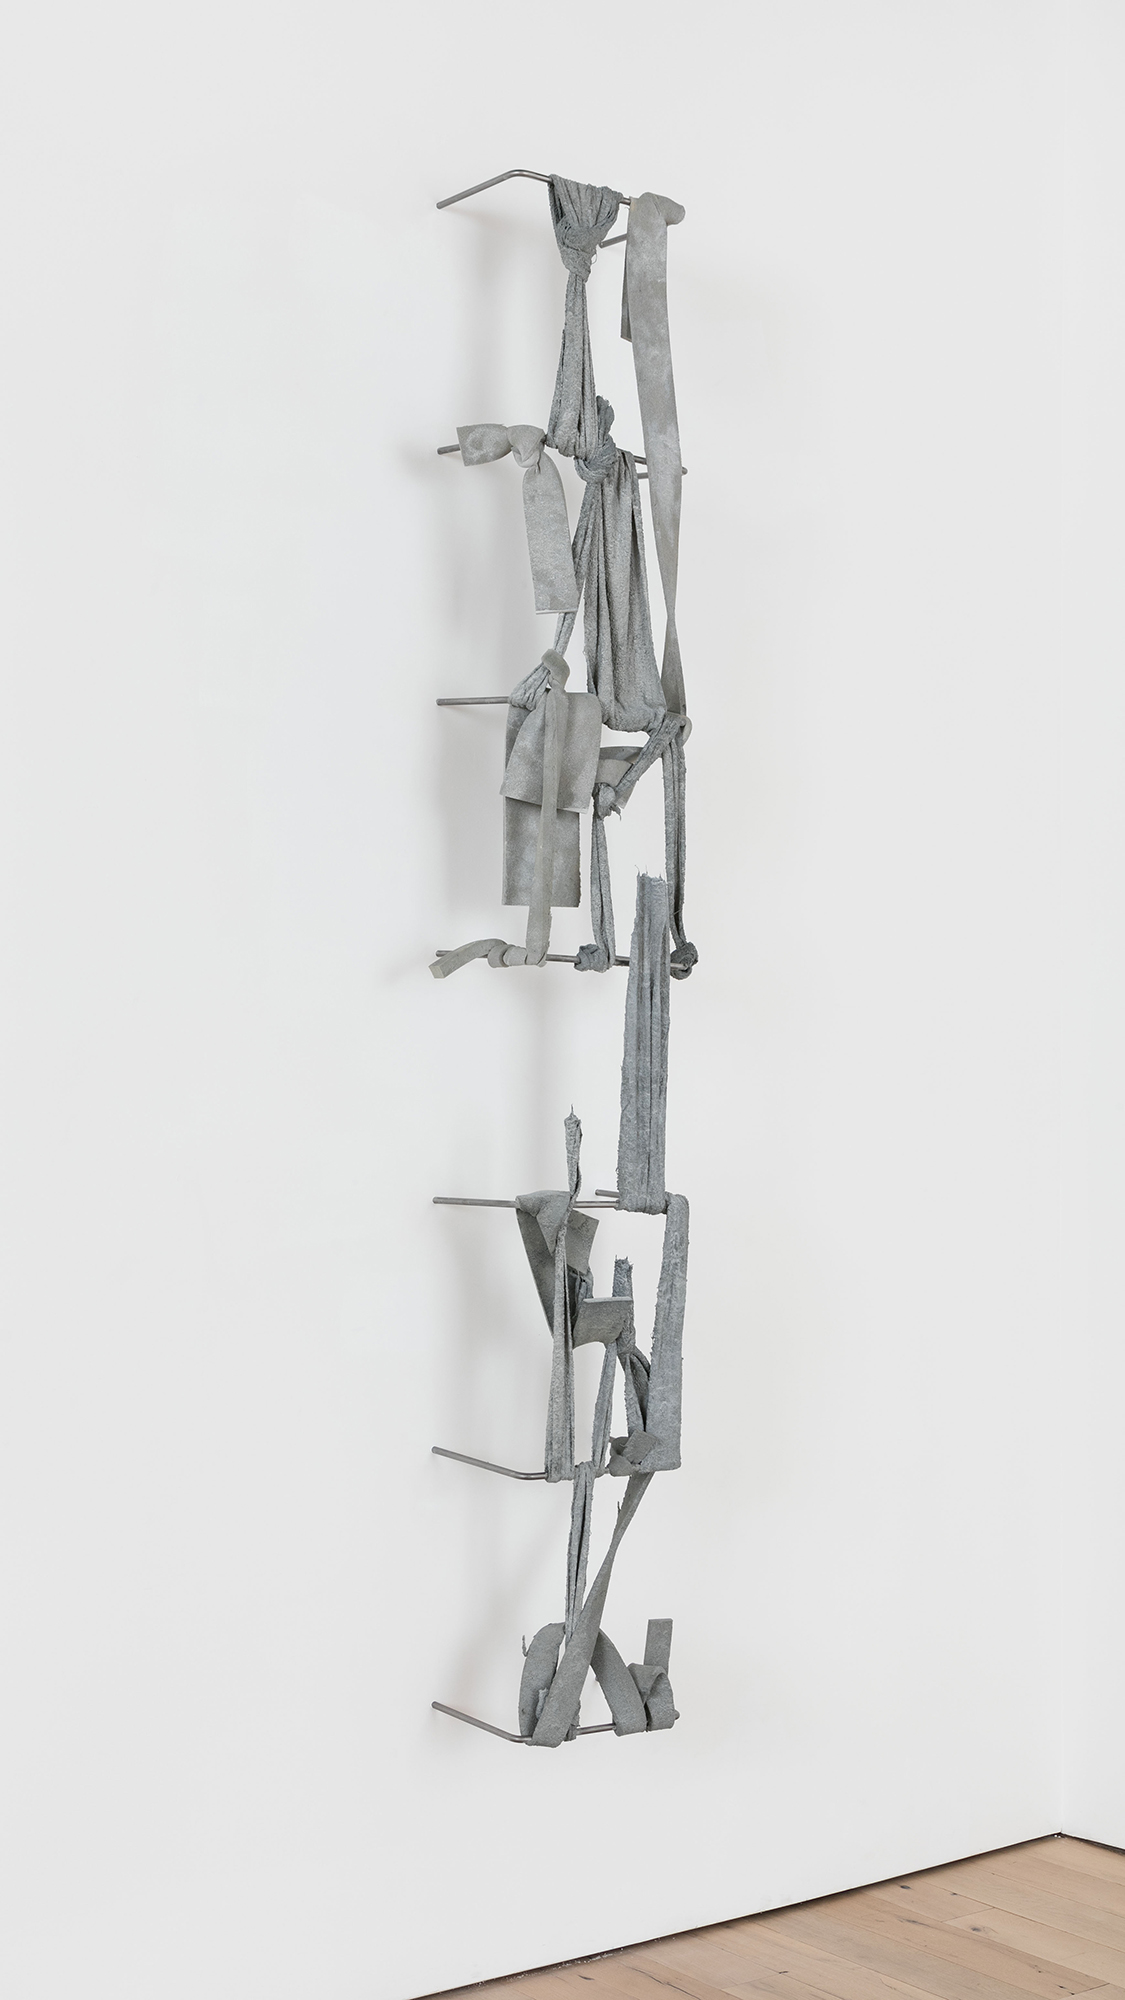 Nikita Gale  FIXED LOOP I-II  2019 Concrete, polyurethane foam, terrycloth, steel 115 × 22 × 13 inches  Photo courtesy of Martos Gallery